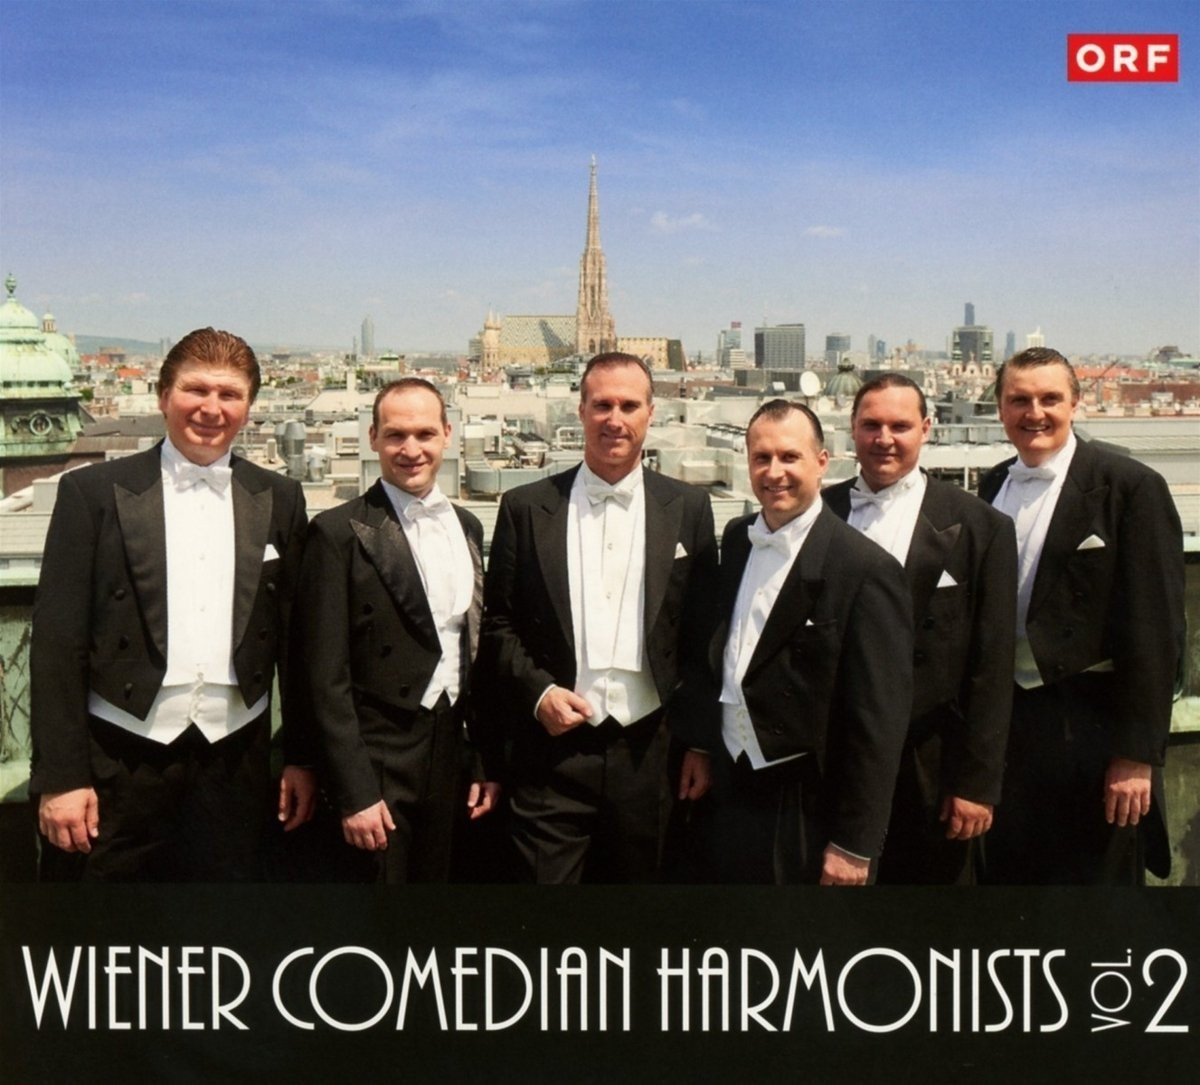 Musik CD Cover der 2. CD der Wiener Comedian Harmonists